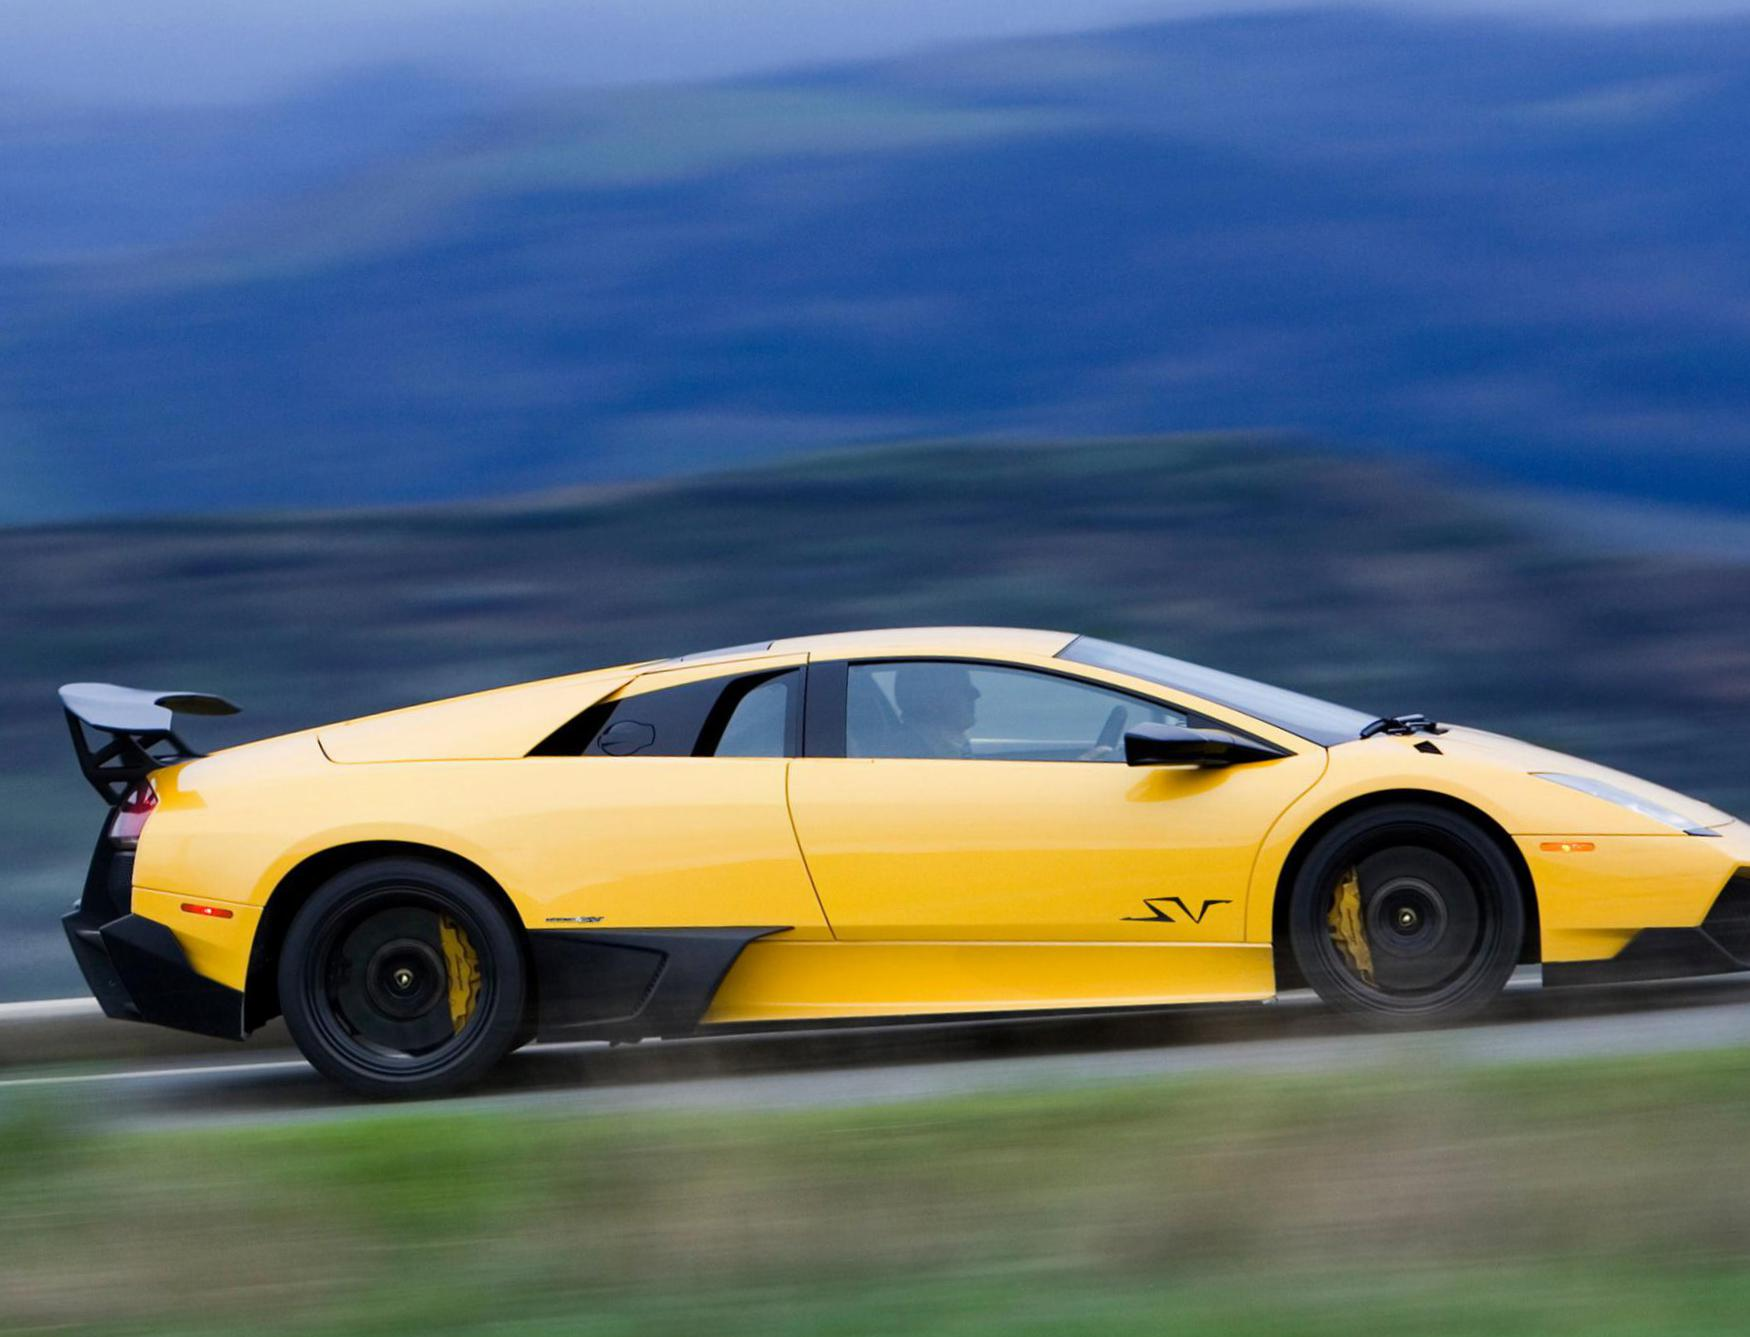 Lamborghini Murcielago LP 670-4 SuperVeloce prices 2015